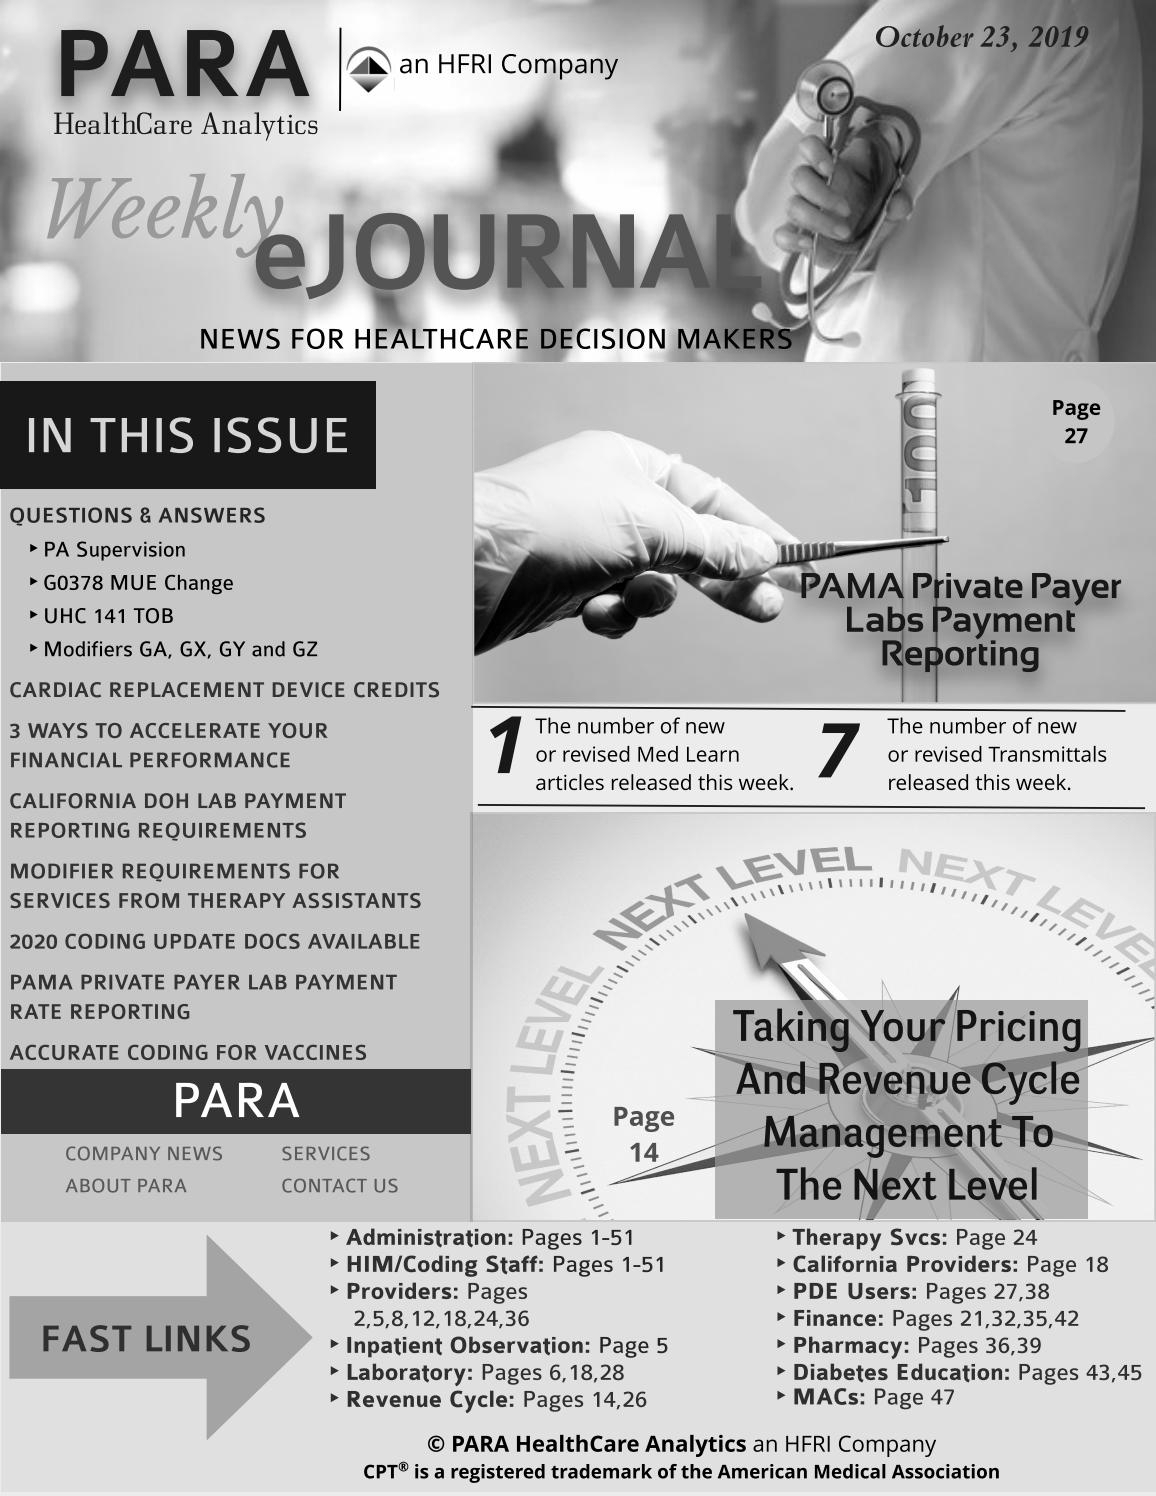 Para Healthcare Analytics Ejournal October 23, 2019